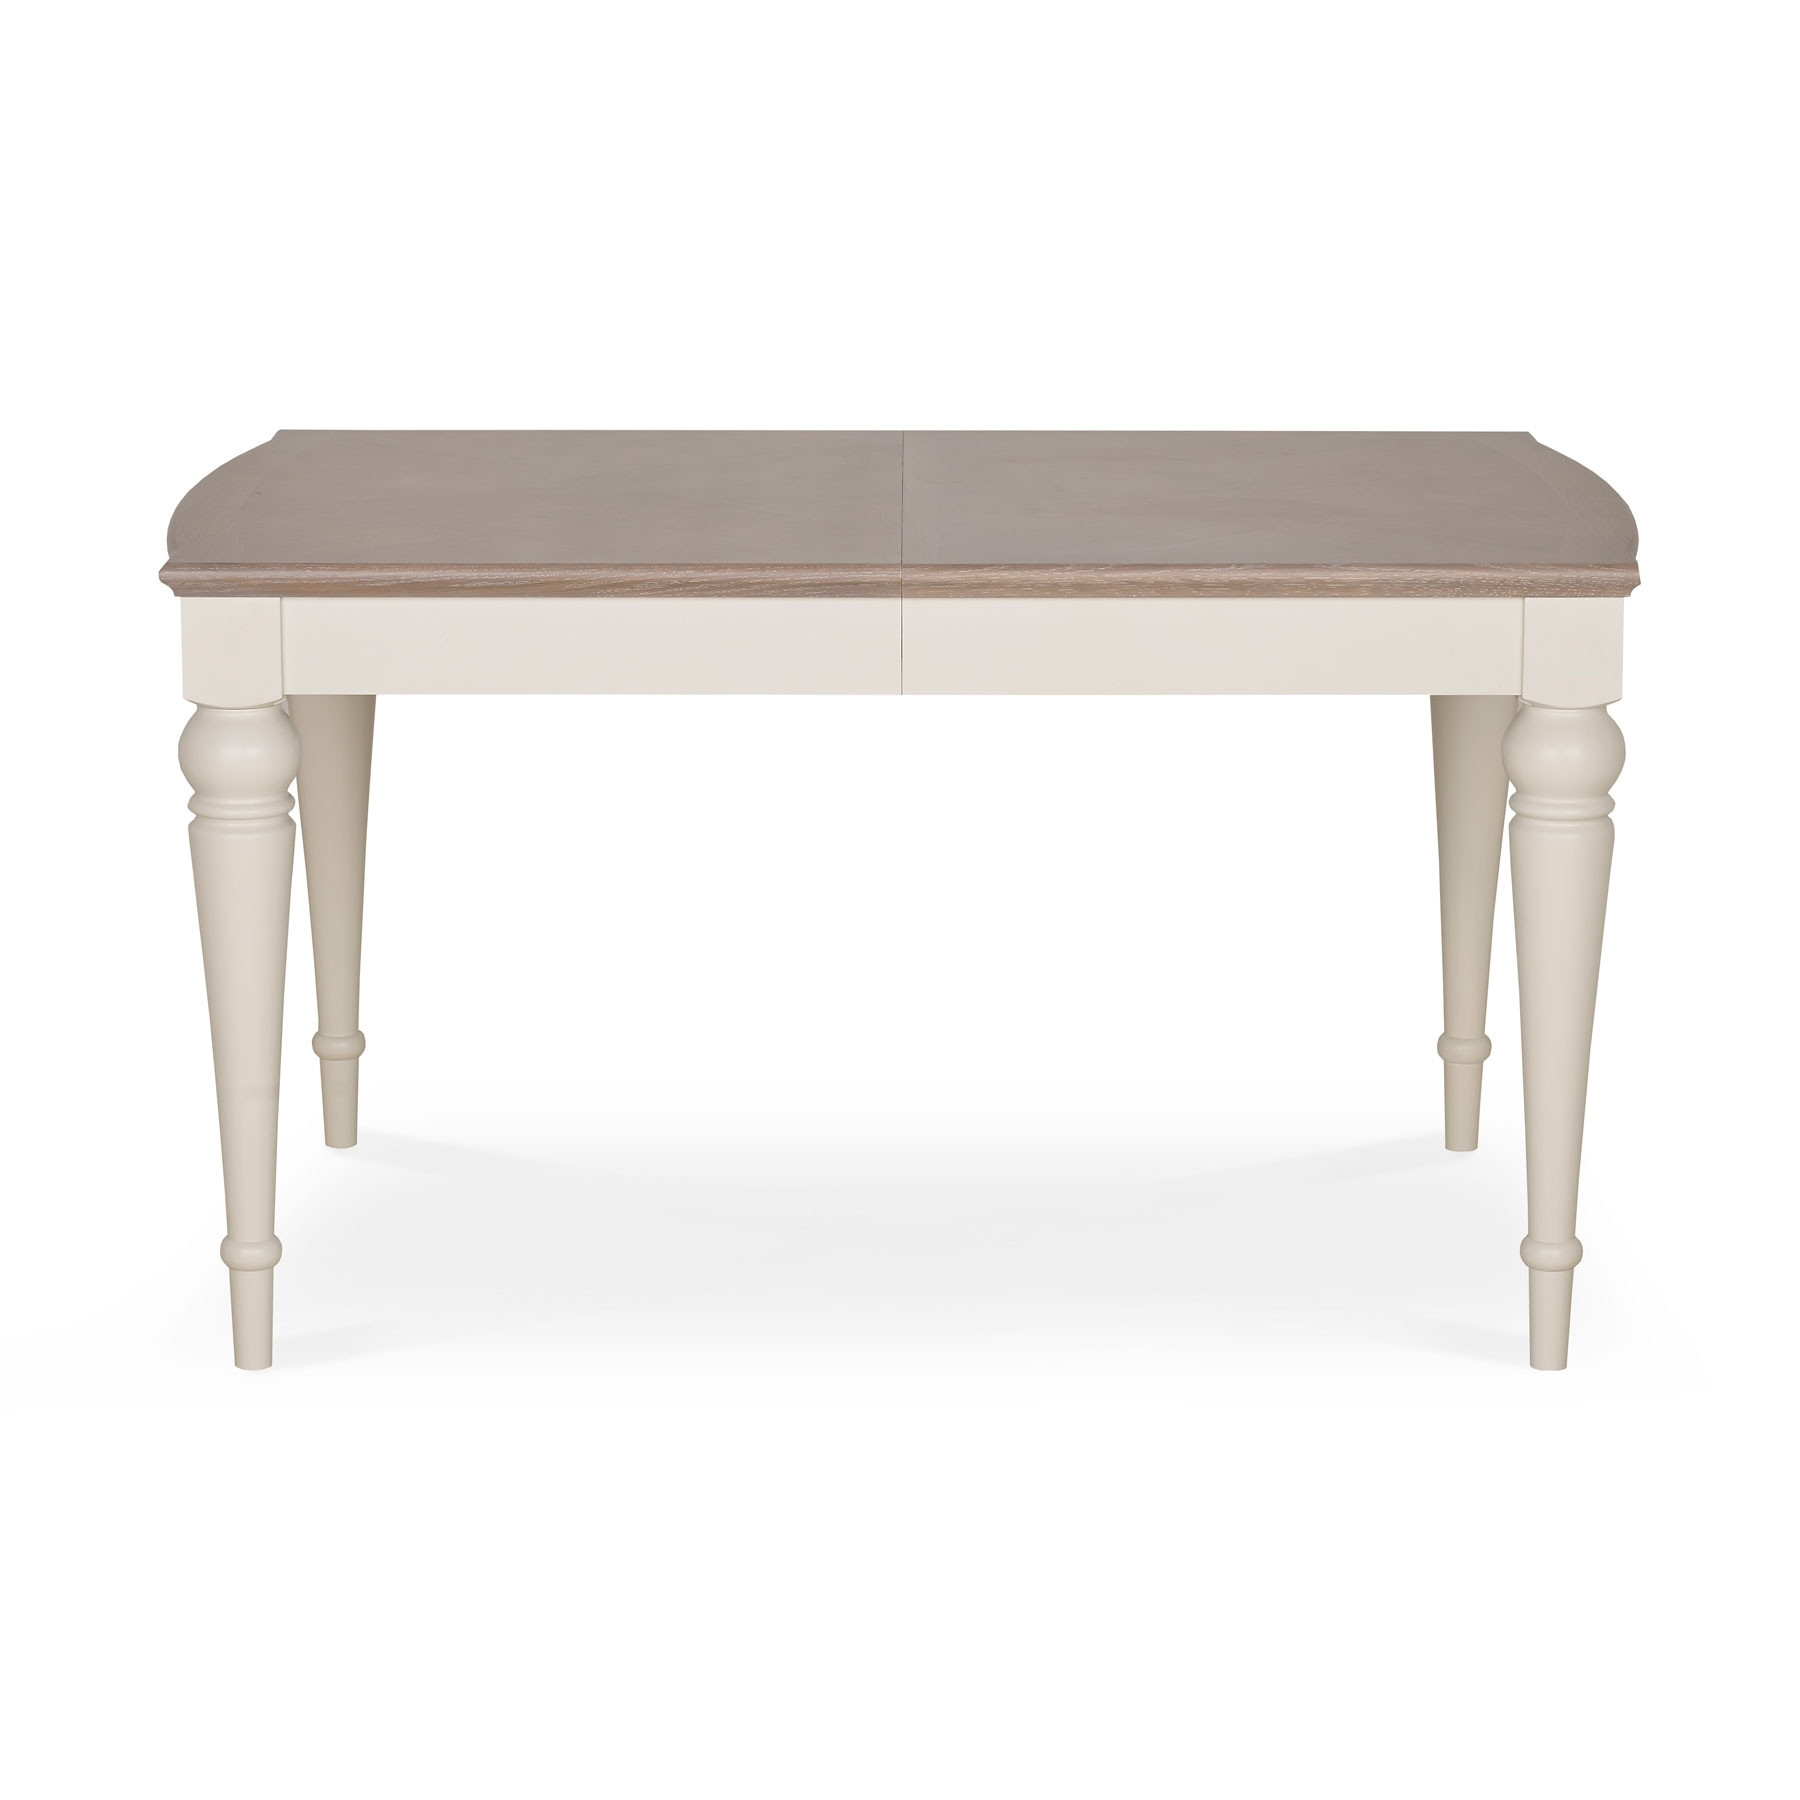 Hampton Grey Wash Oak Small Extending Dining Table Intended For Most Current Small Extending Dining Tables (View 5 of 25)